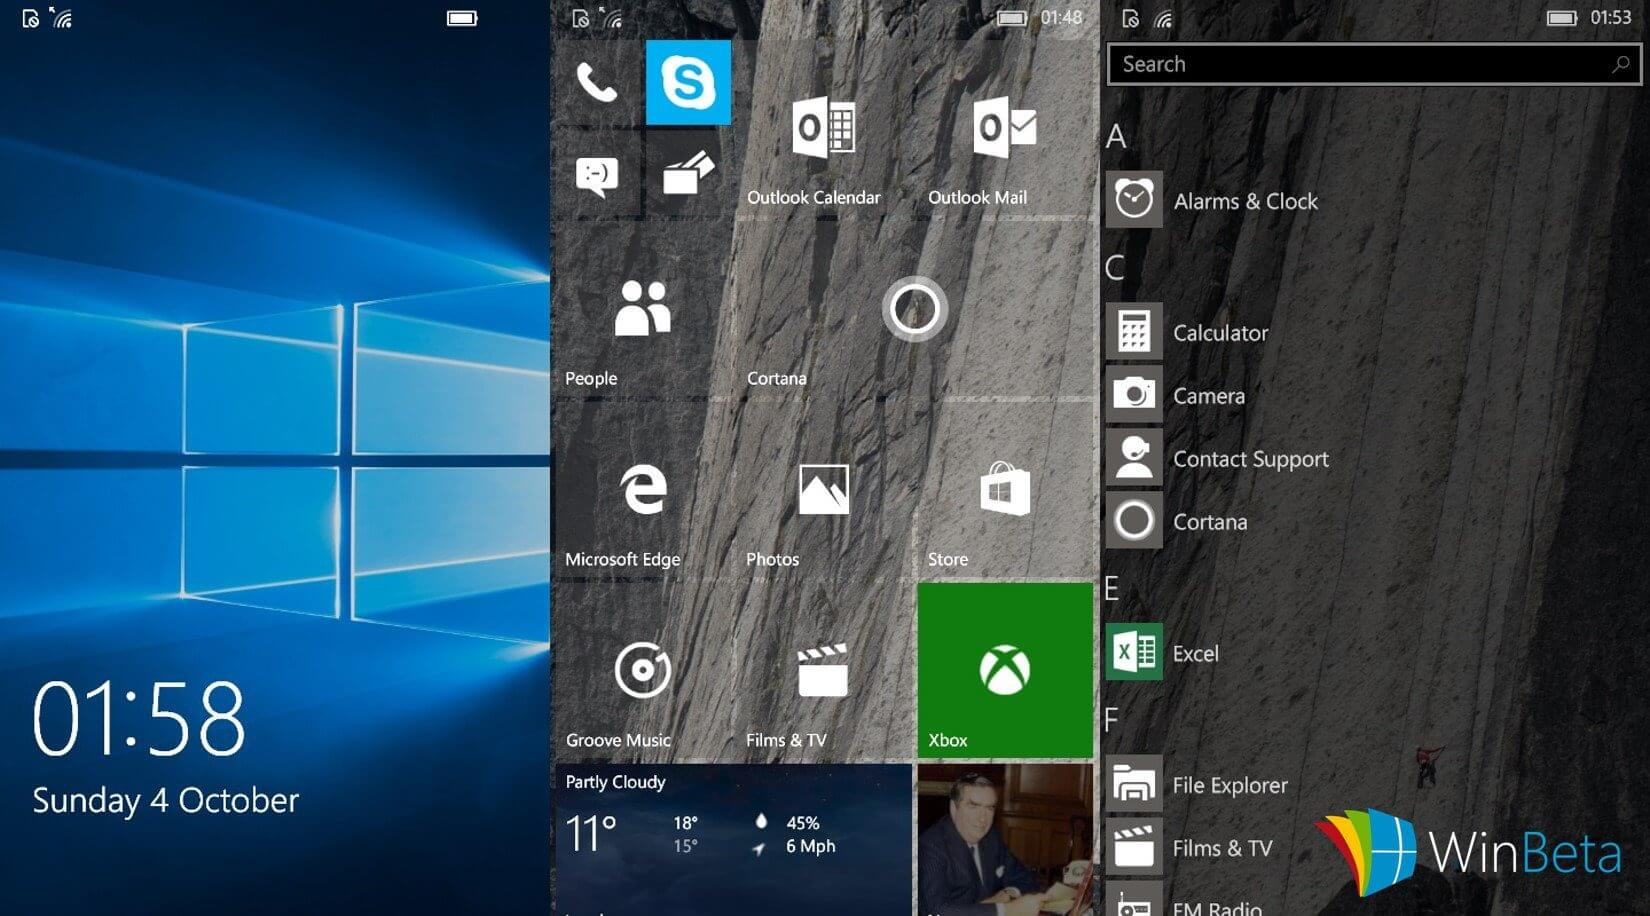 Windows 10 Mobile Build 101XX (Okt. 2015)